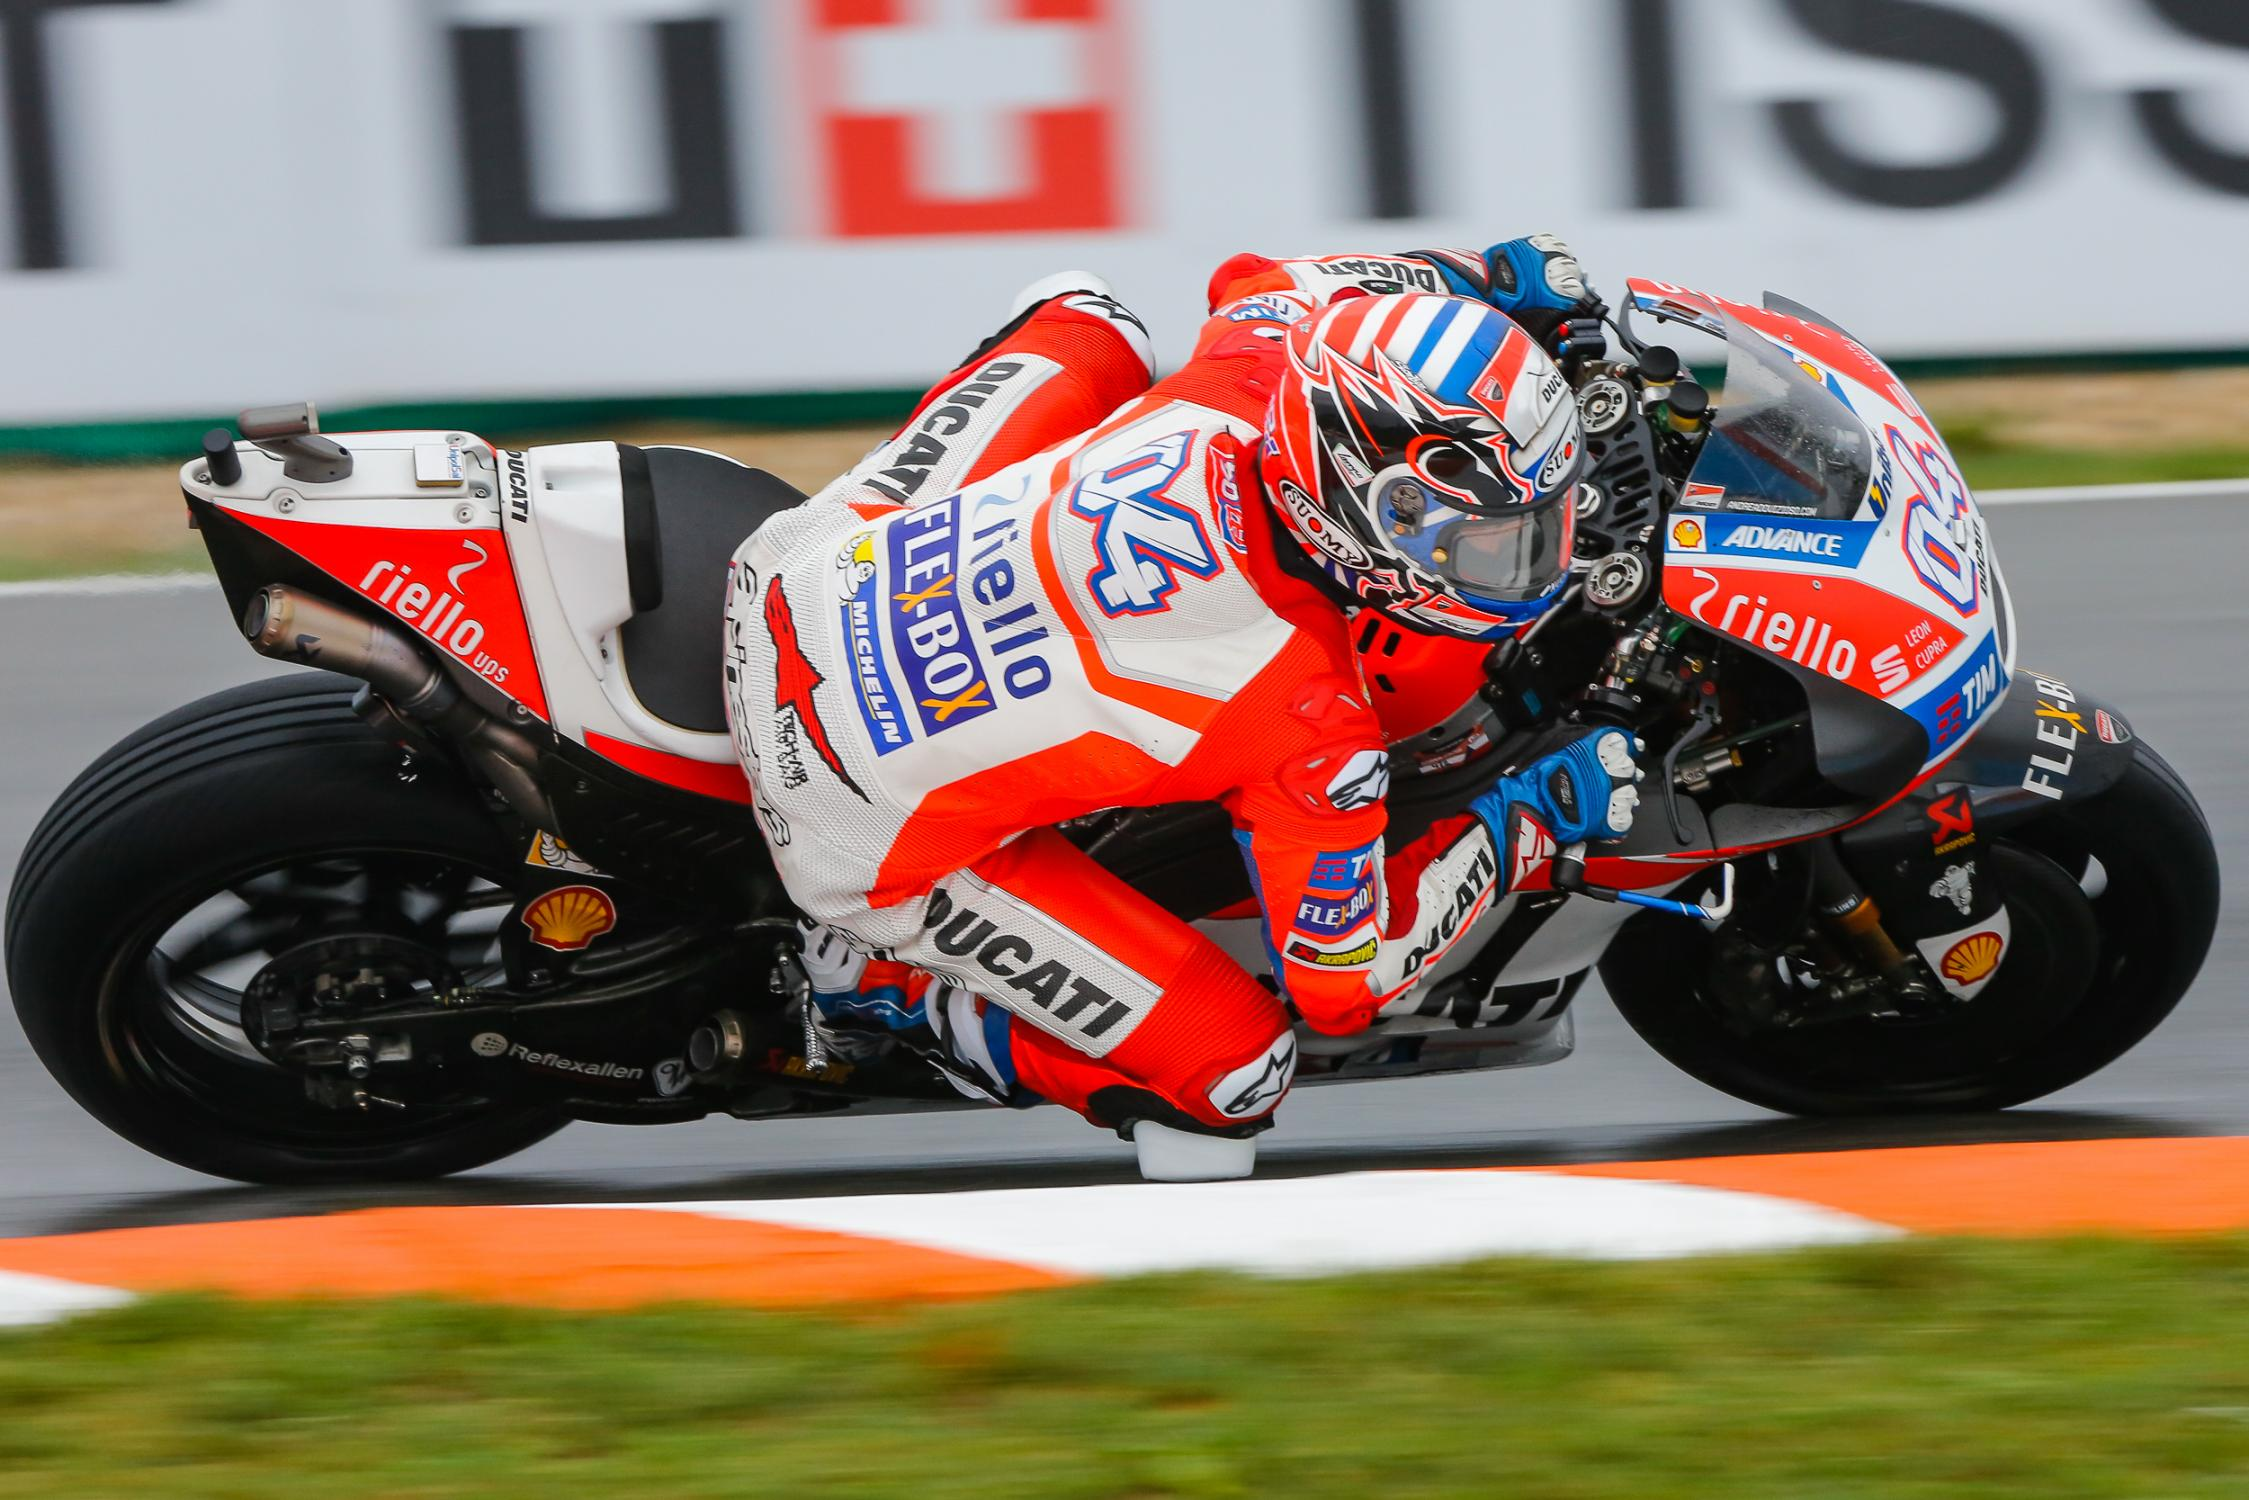 04-andrea-dovizioso-ita_gp_4358.gallery_full_top_fullscreen.jpg